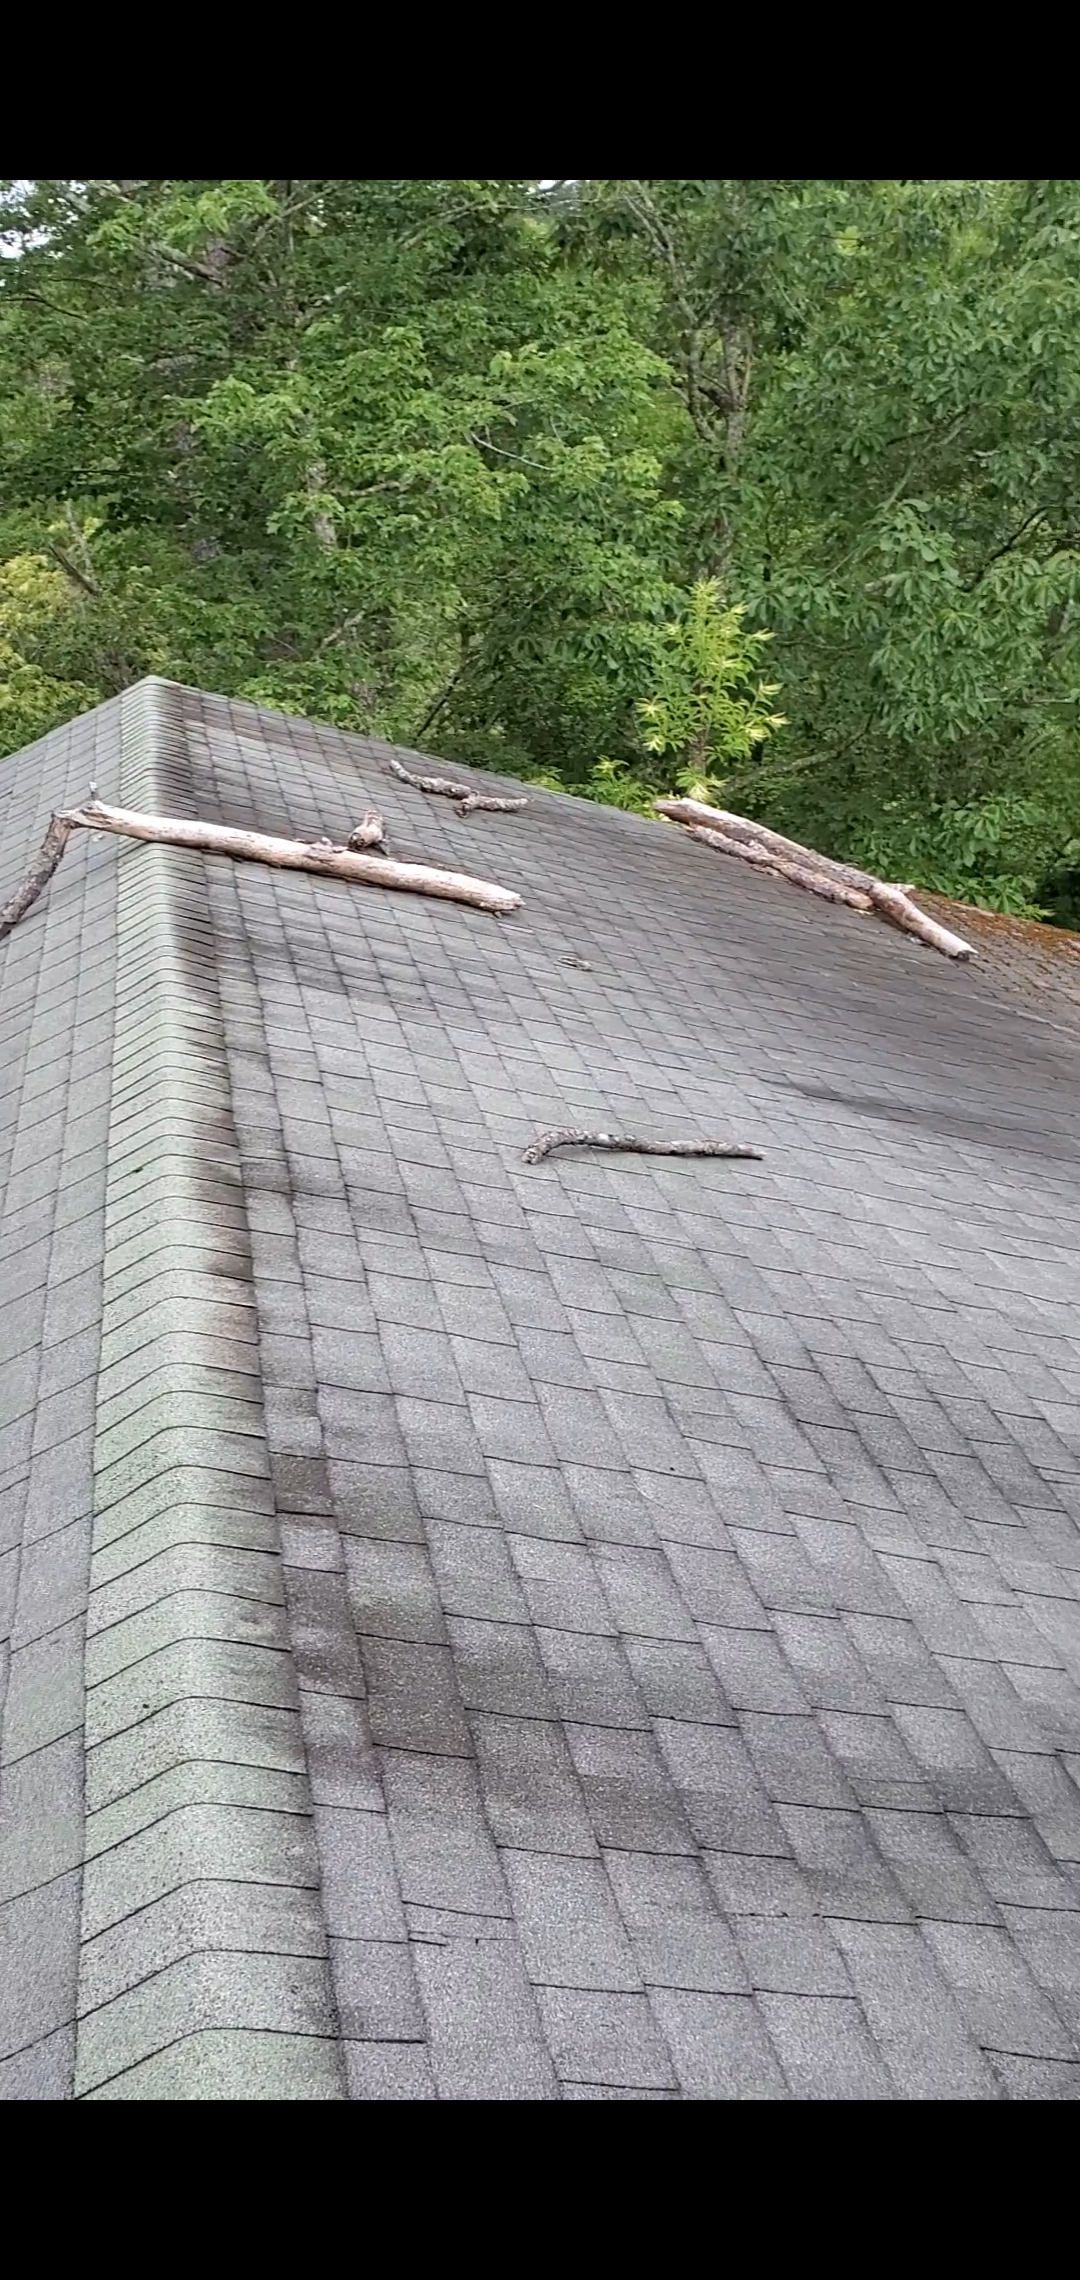 This is a picture of tree limbs on the roof of the house.